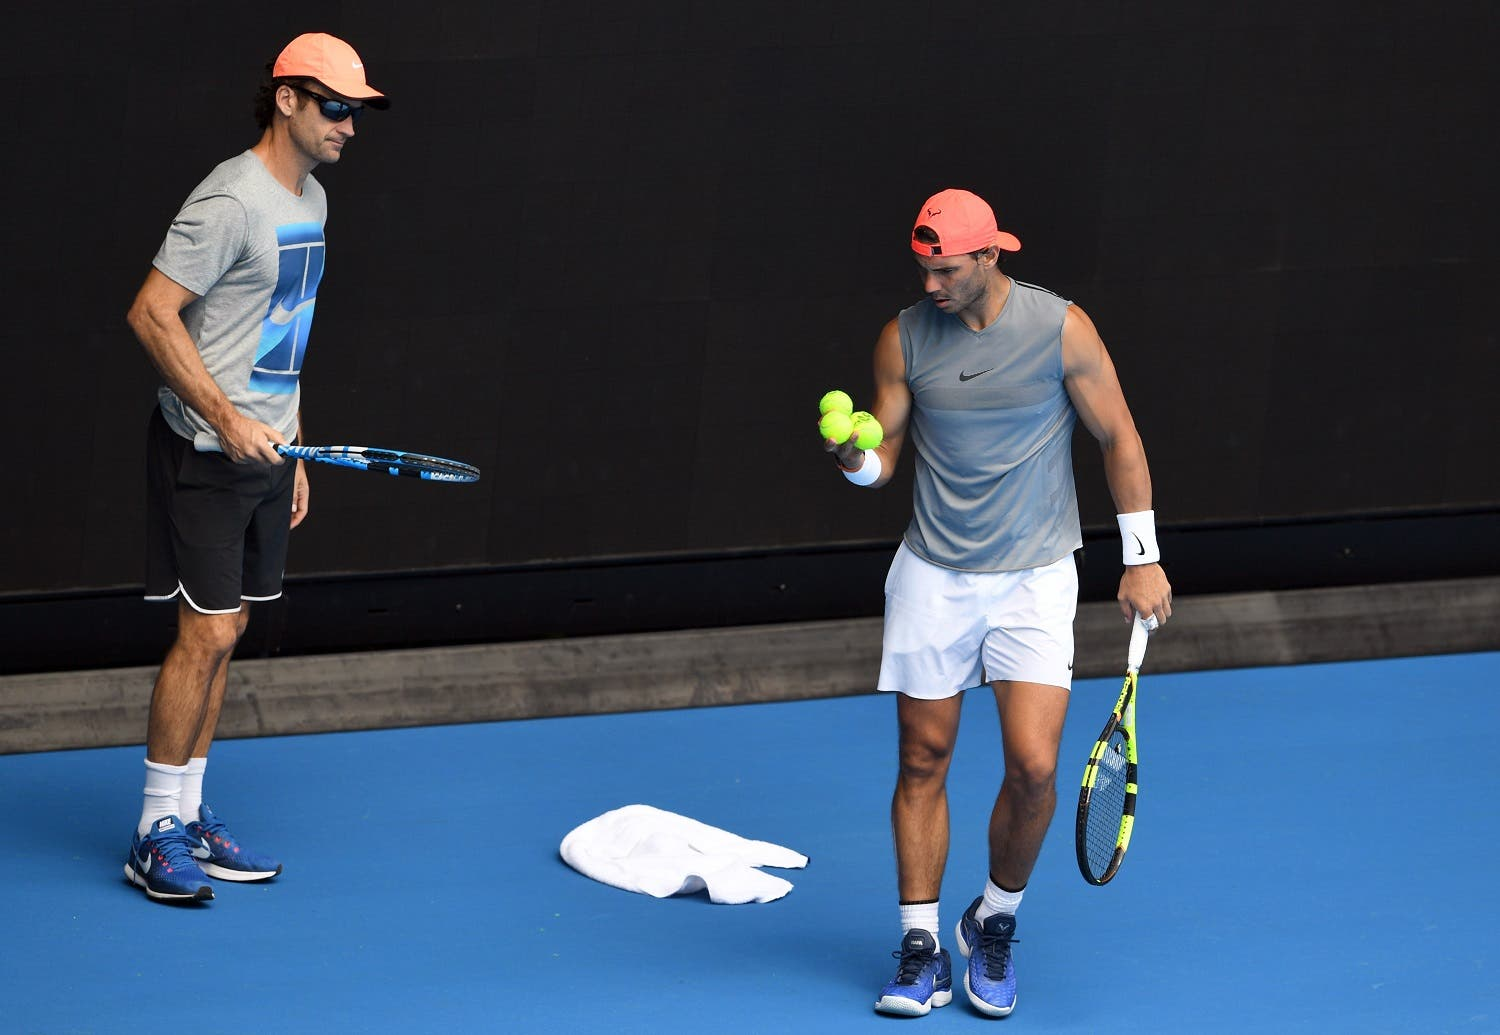 Rafael Nadal of Spain (R) is watched by his coach Carlos Moya (L) during a training session ahead of the Australian Open at Melbourne Park in Melbourne on January 10, 2018. (AFP)